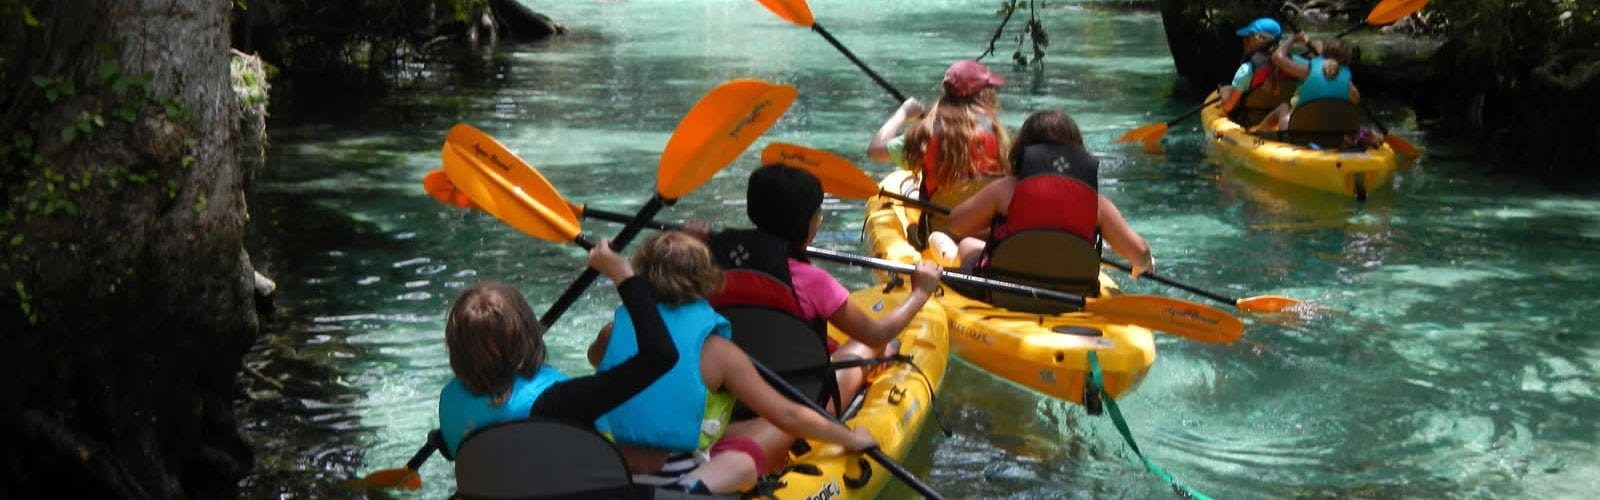 eco-adventures-tours-kayak-rivieres-une